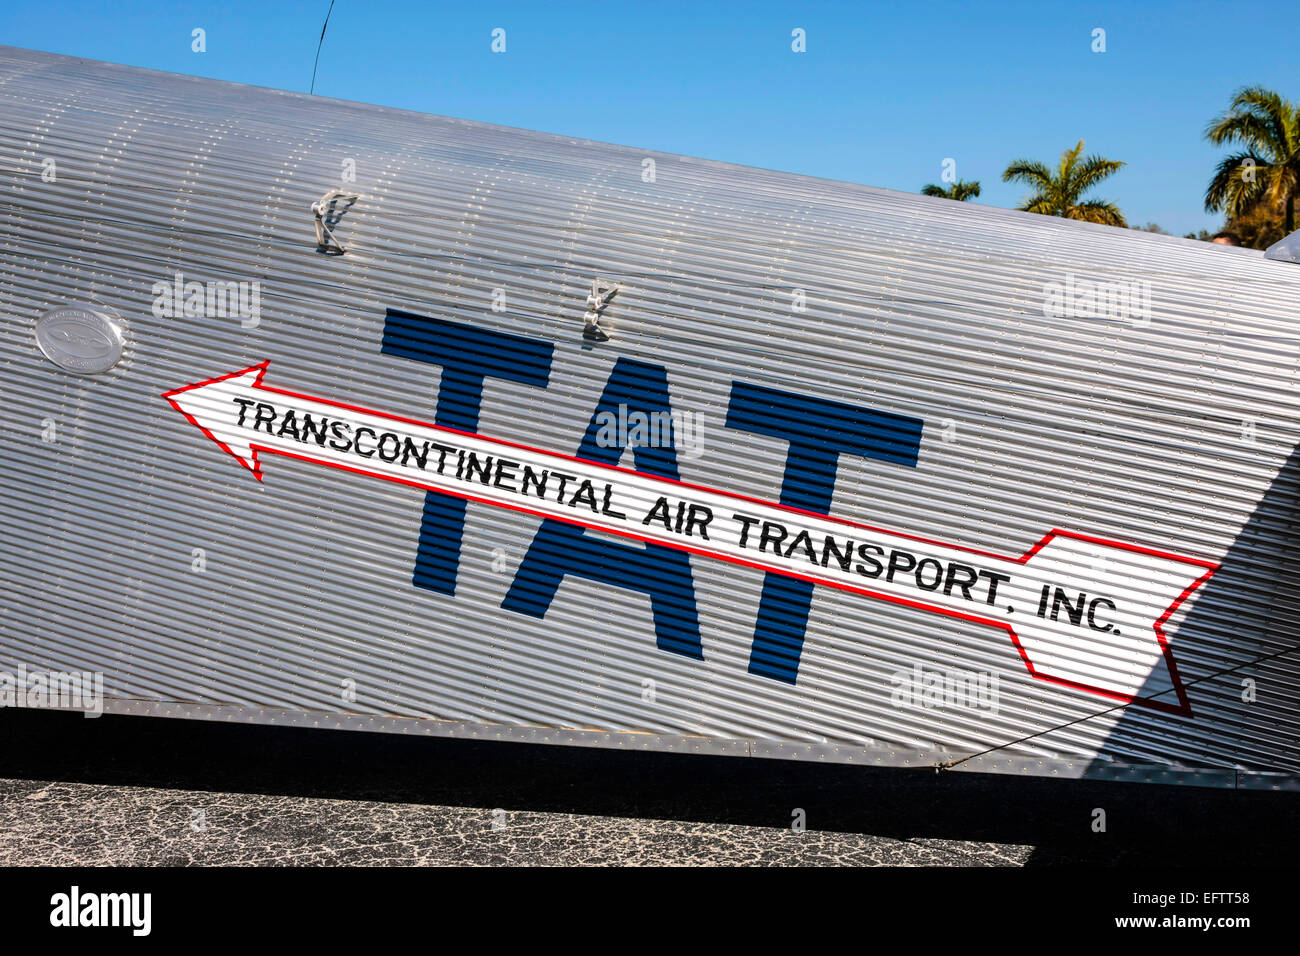 Logo of TAT - Transcontinenral Air Transport Inc on the side of a 1929 Ford 4-AT-E Trimotor aircraft - Stock Image